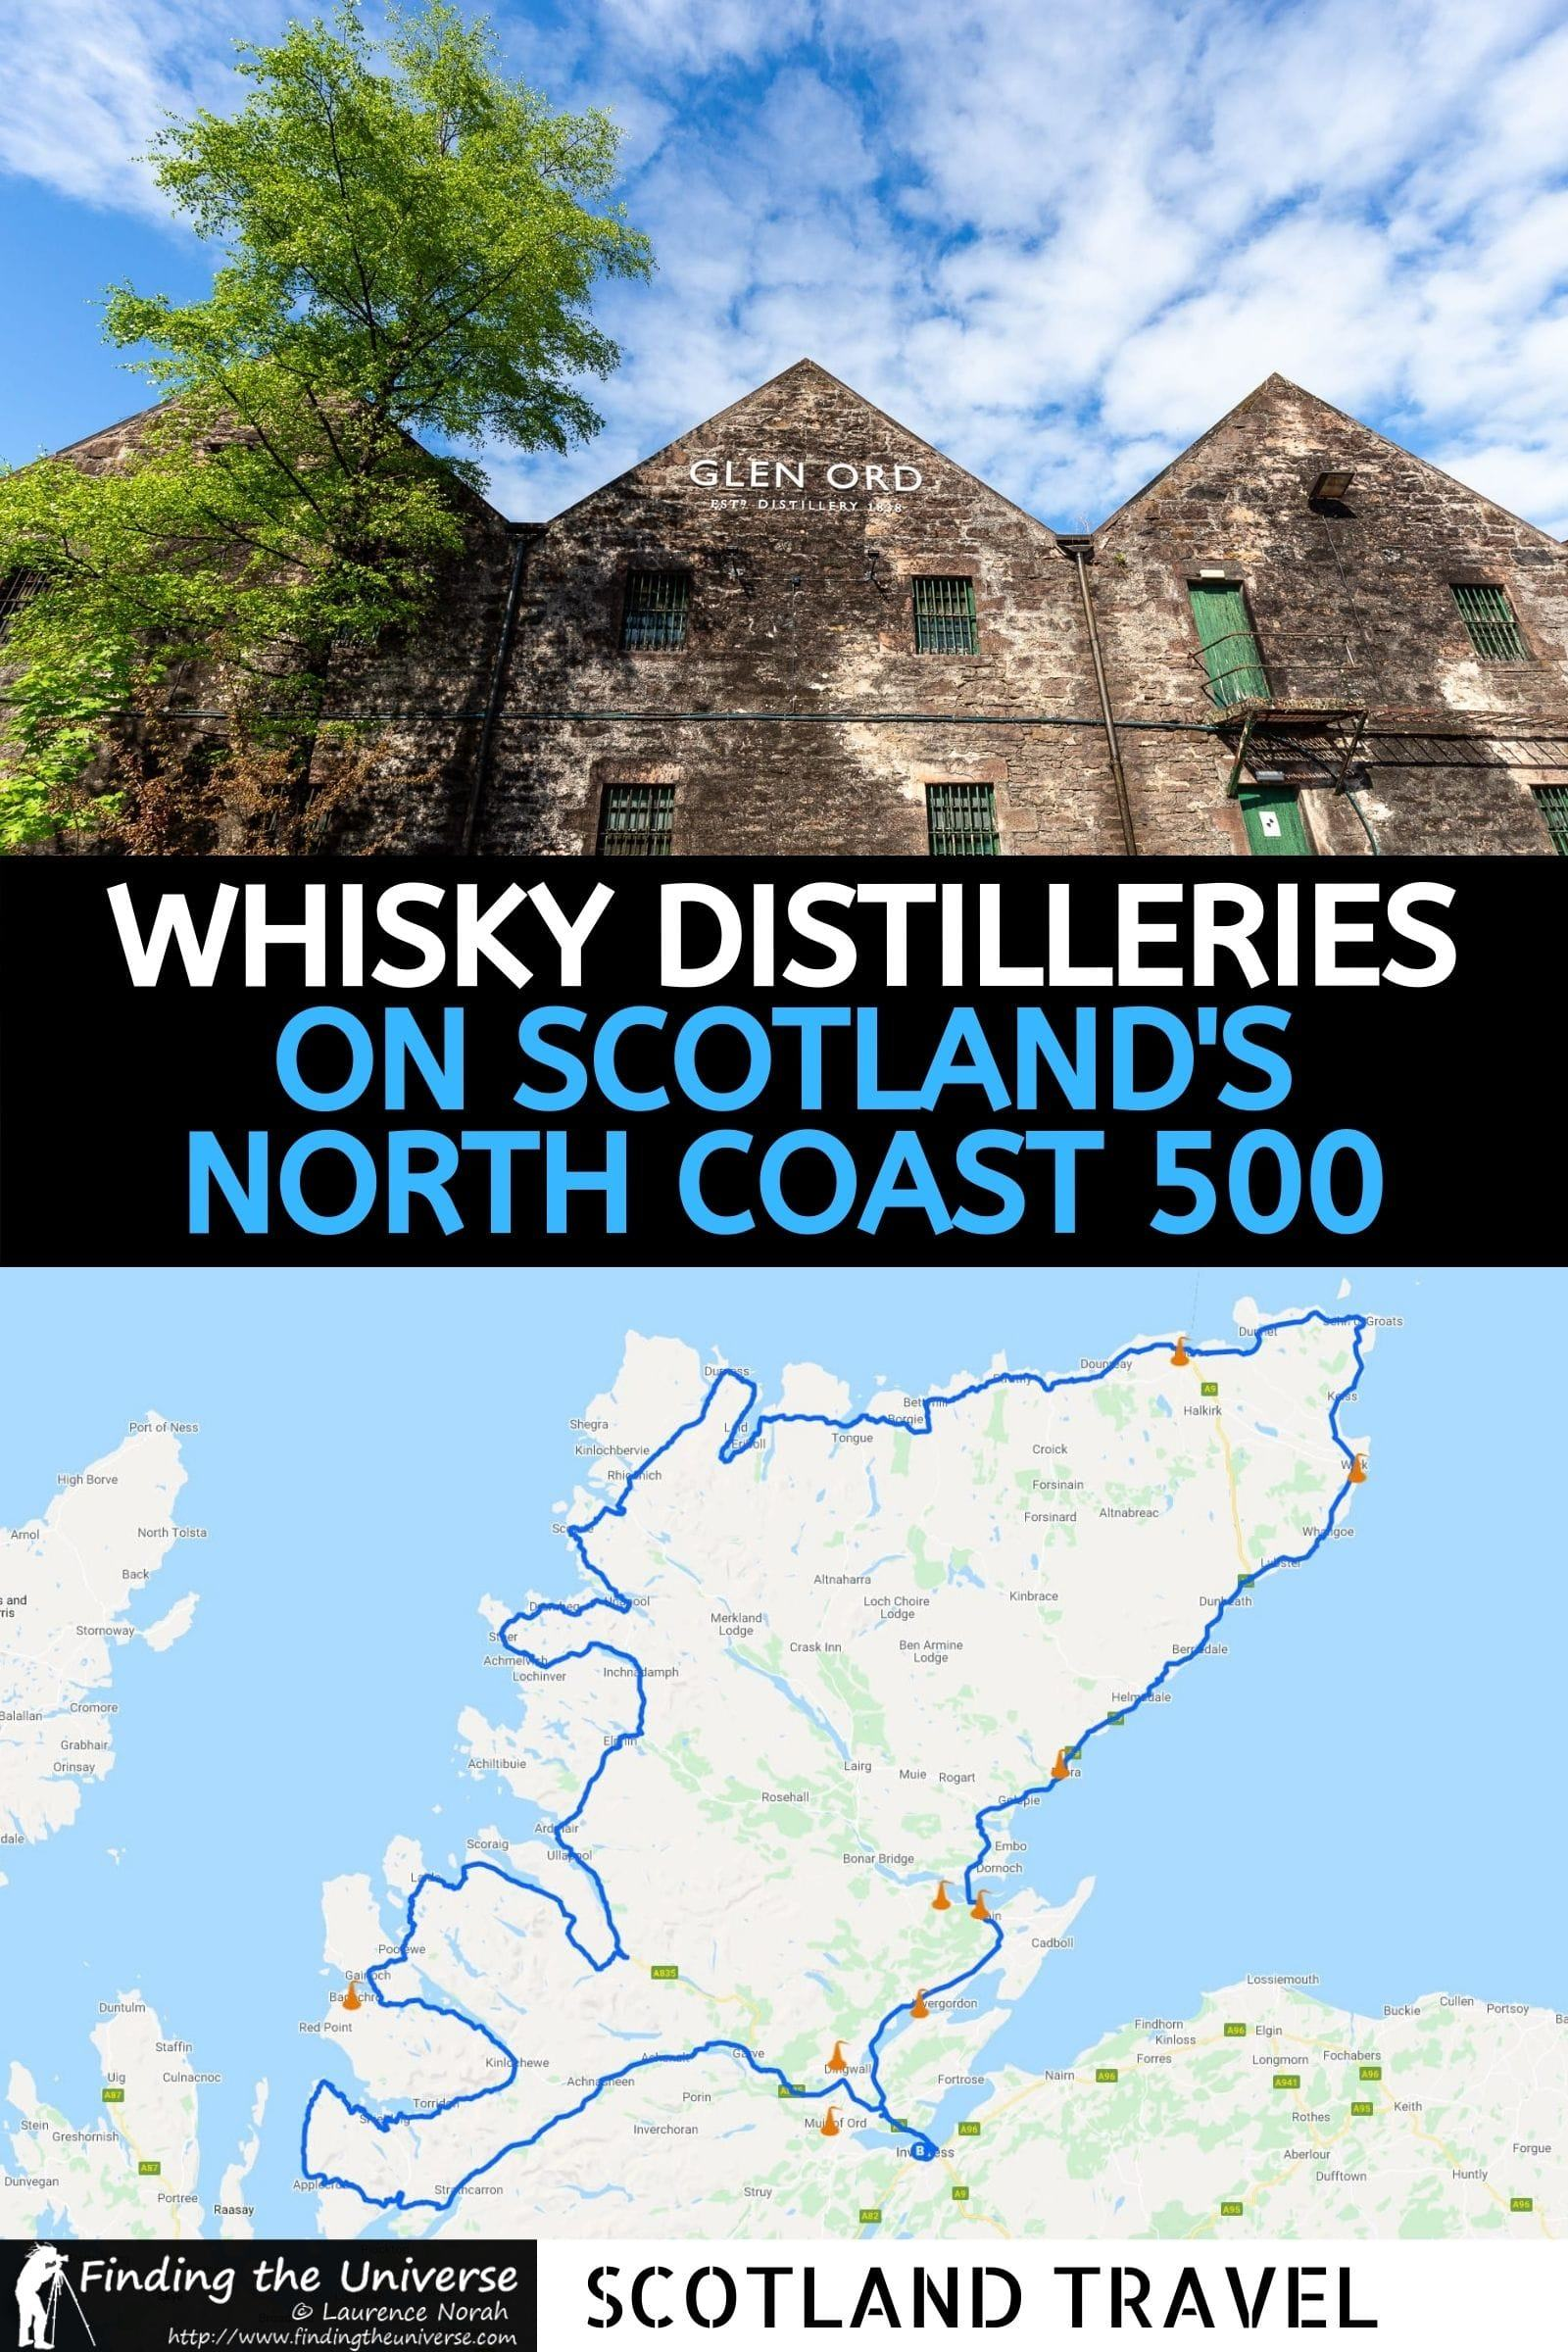 A guide to all the whisky distilleries on the North Coast 500 that you can visit as part of your road trip on this Scottish driving route!